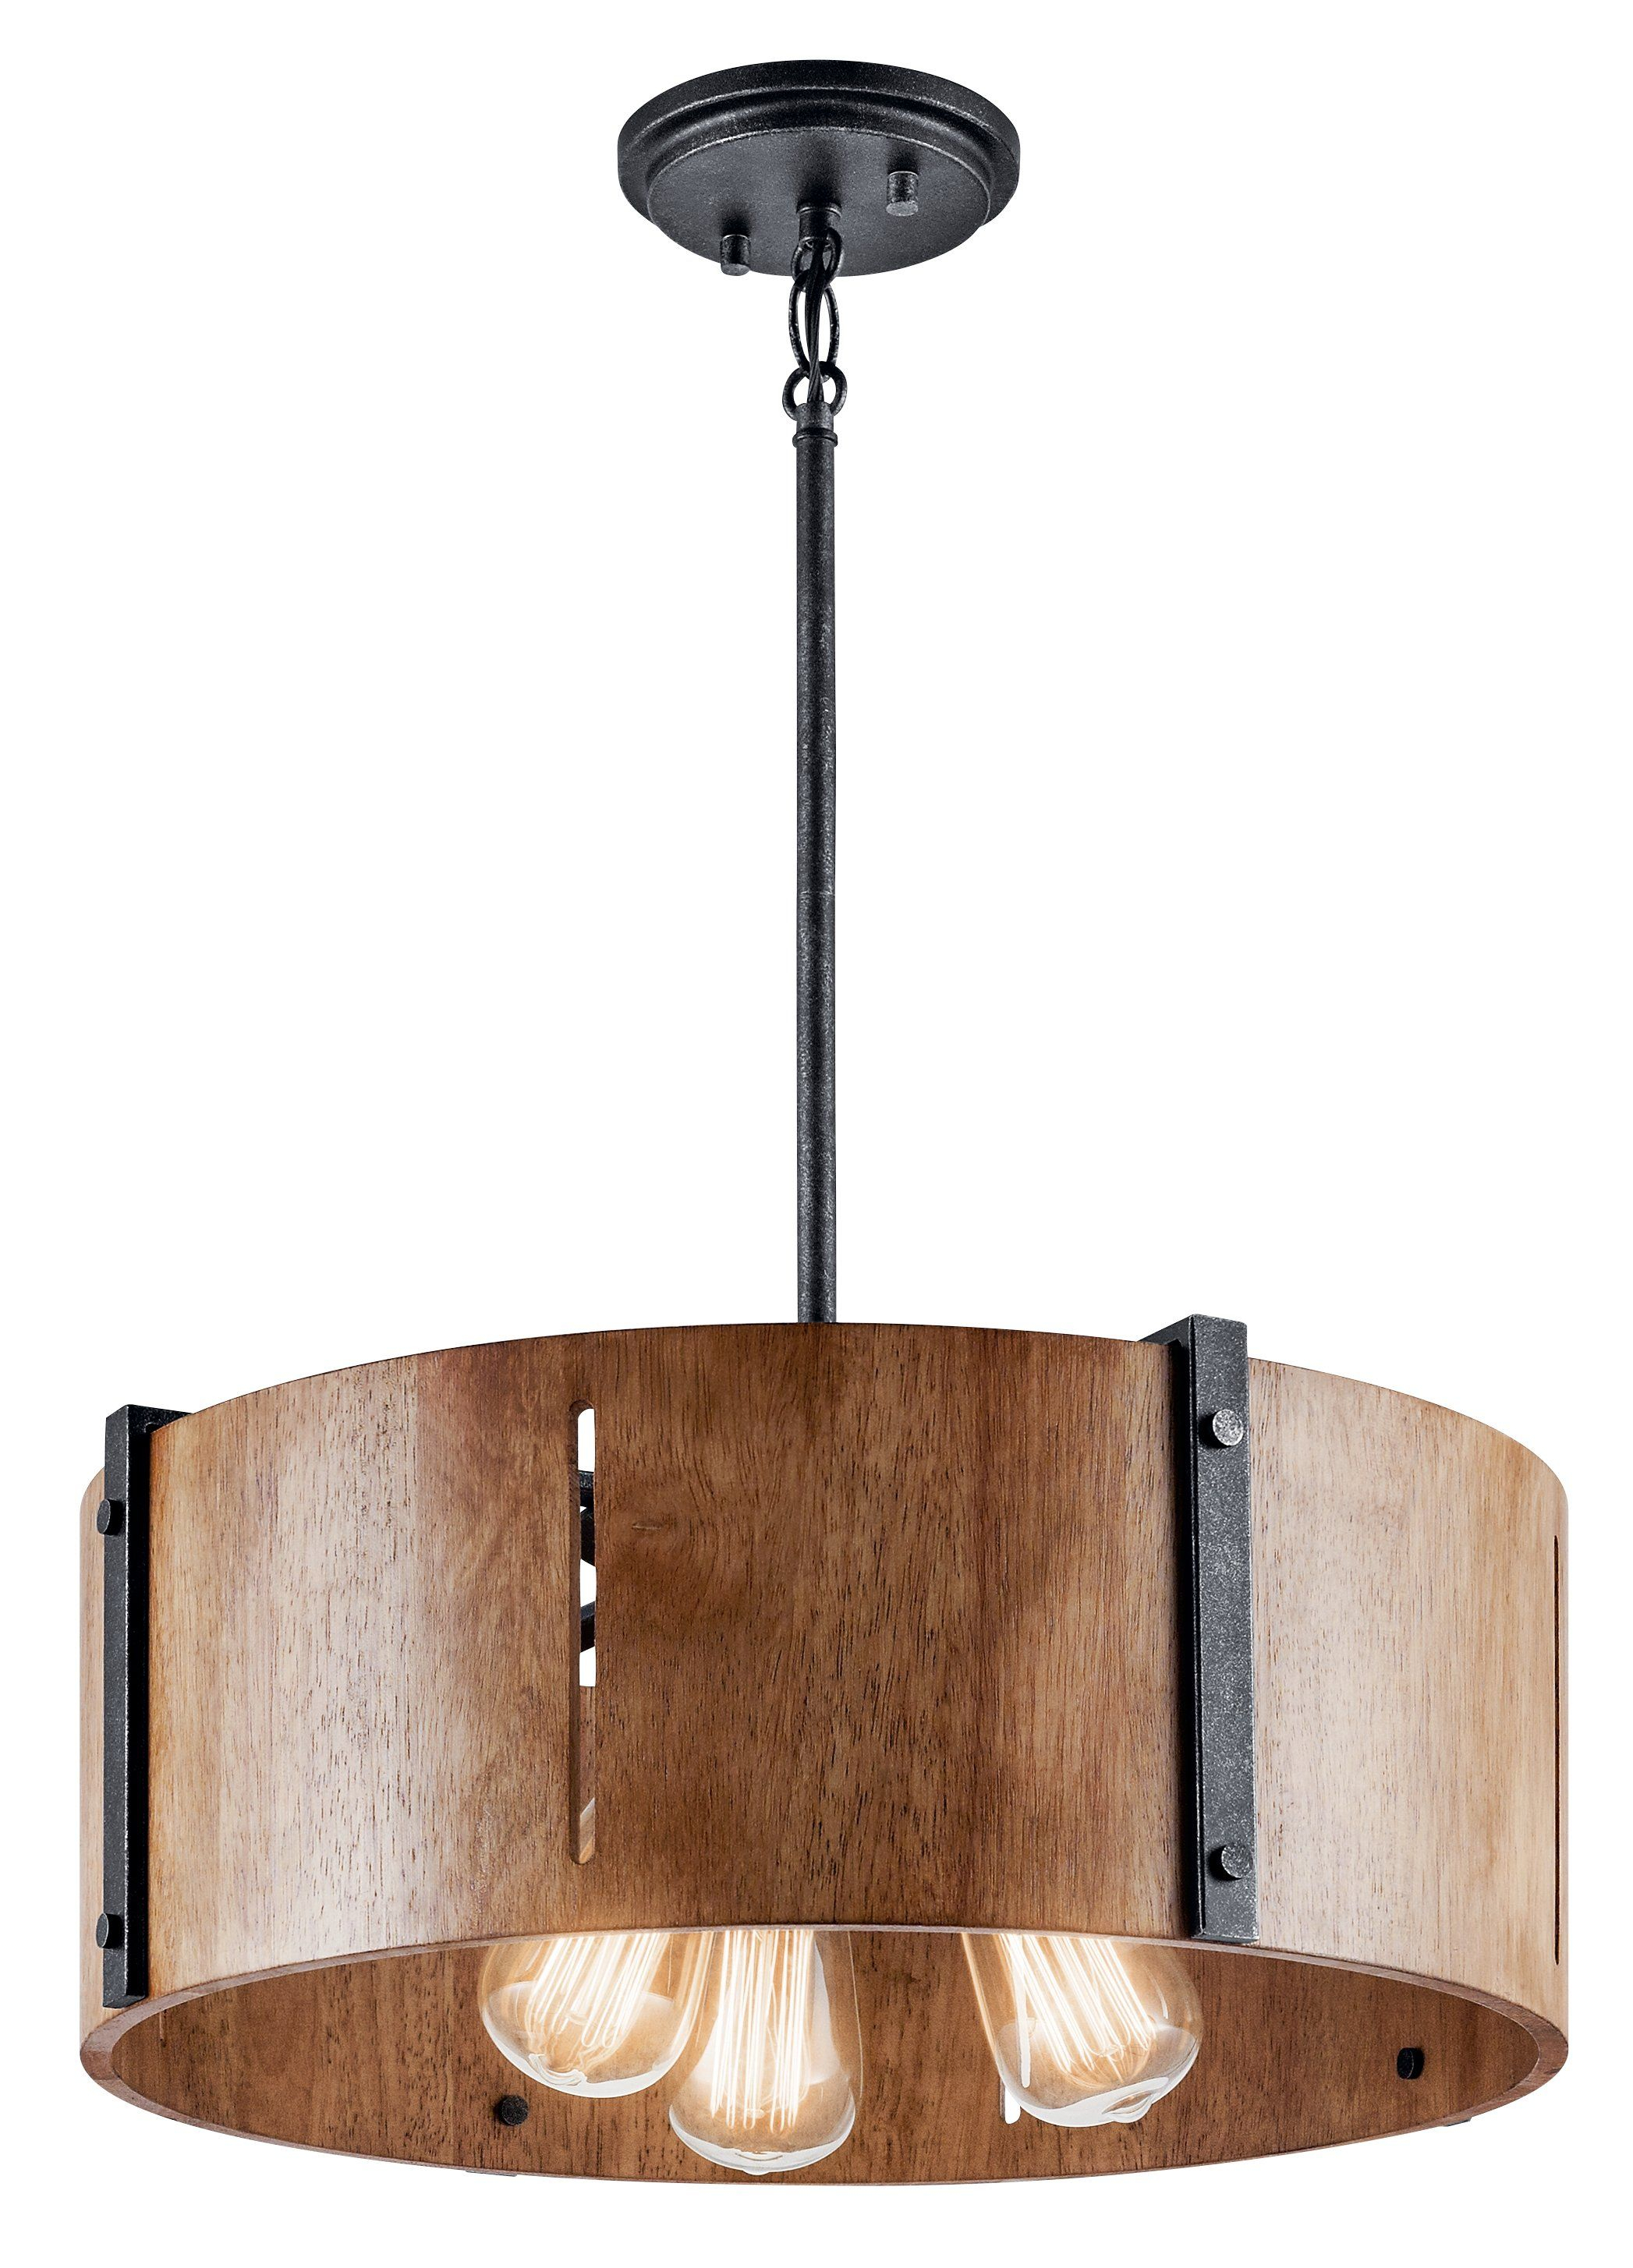 Elbur Pendant/semi Flush 3 Light - Distressed Black In 2019 pertaining to Montes 3-Light Drum Chandeliers (Image 5 of 30)